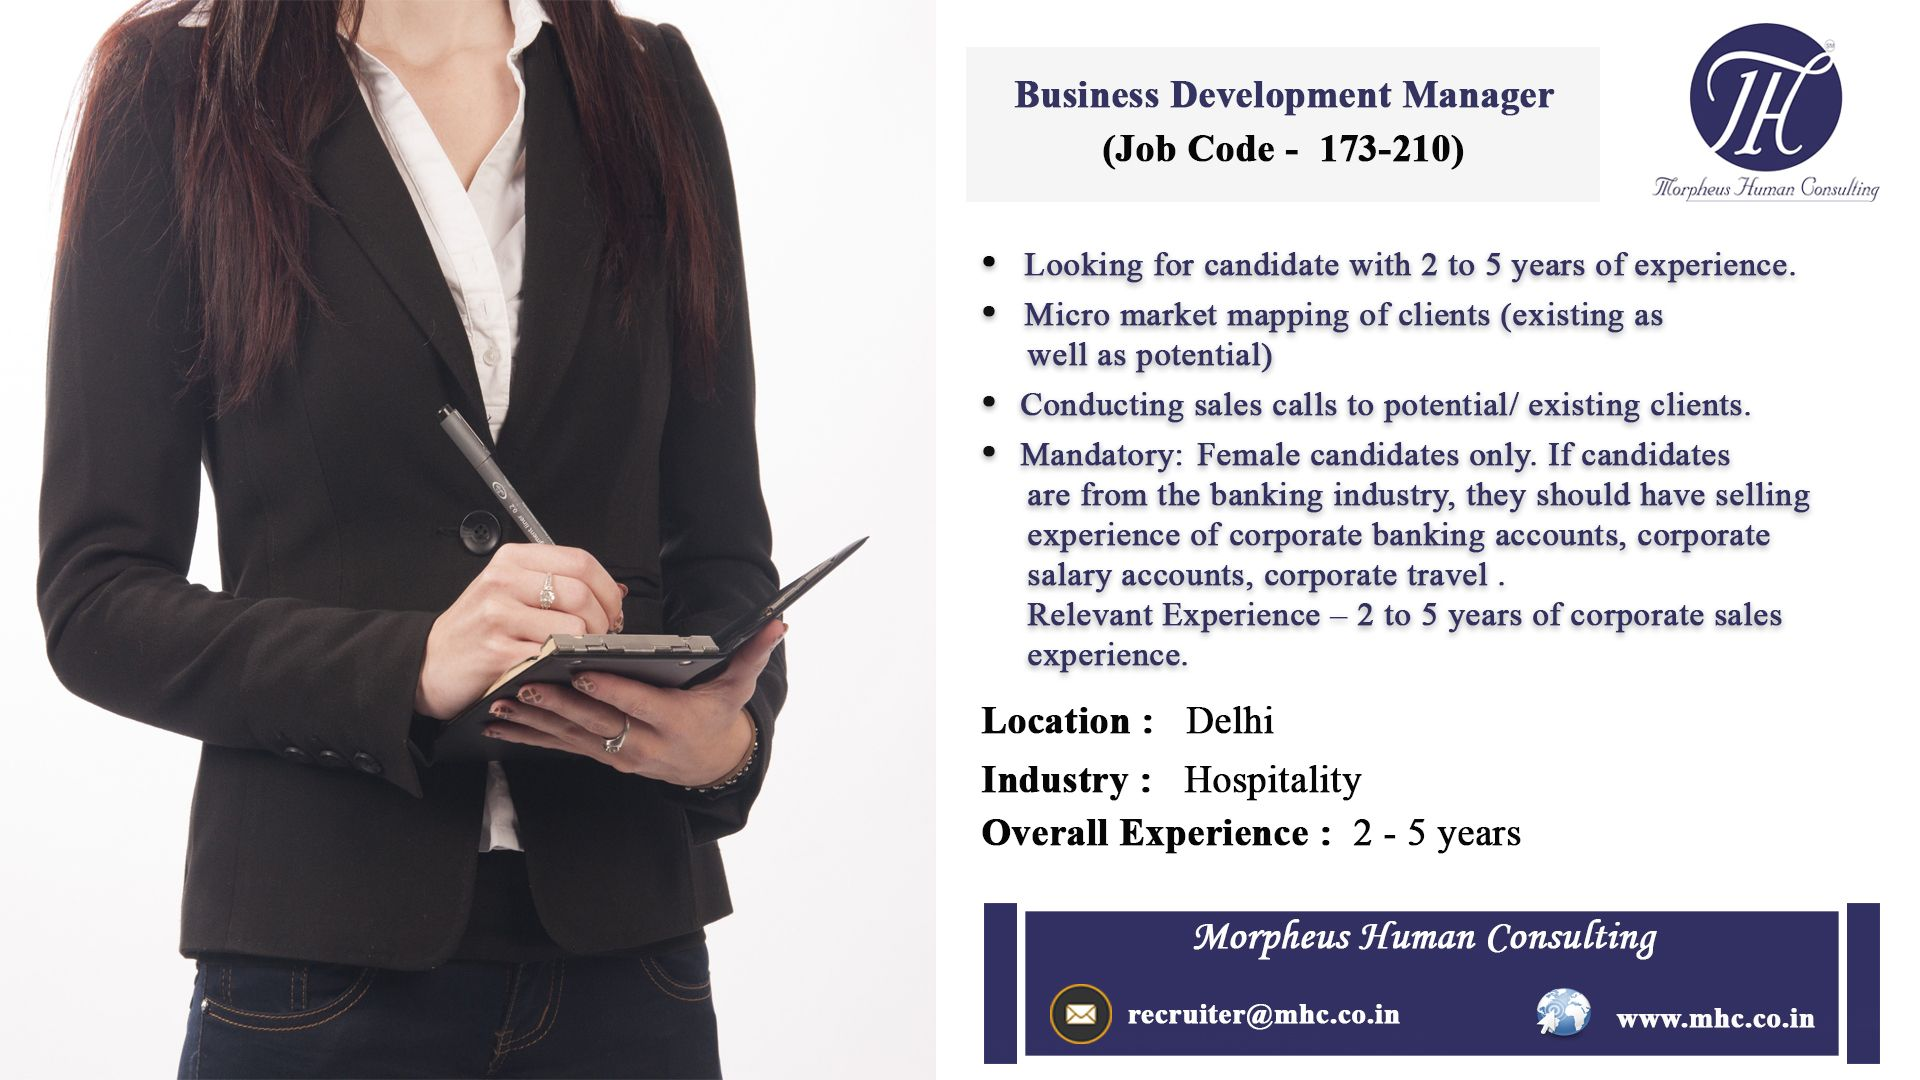 Client Development Manager Sample Resume We Are Looking For Experienced Candidates For The Position Of .